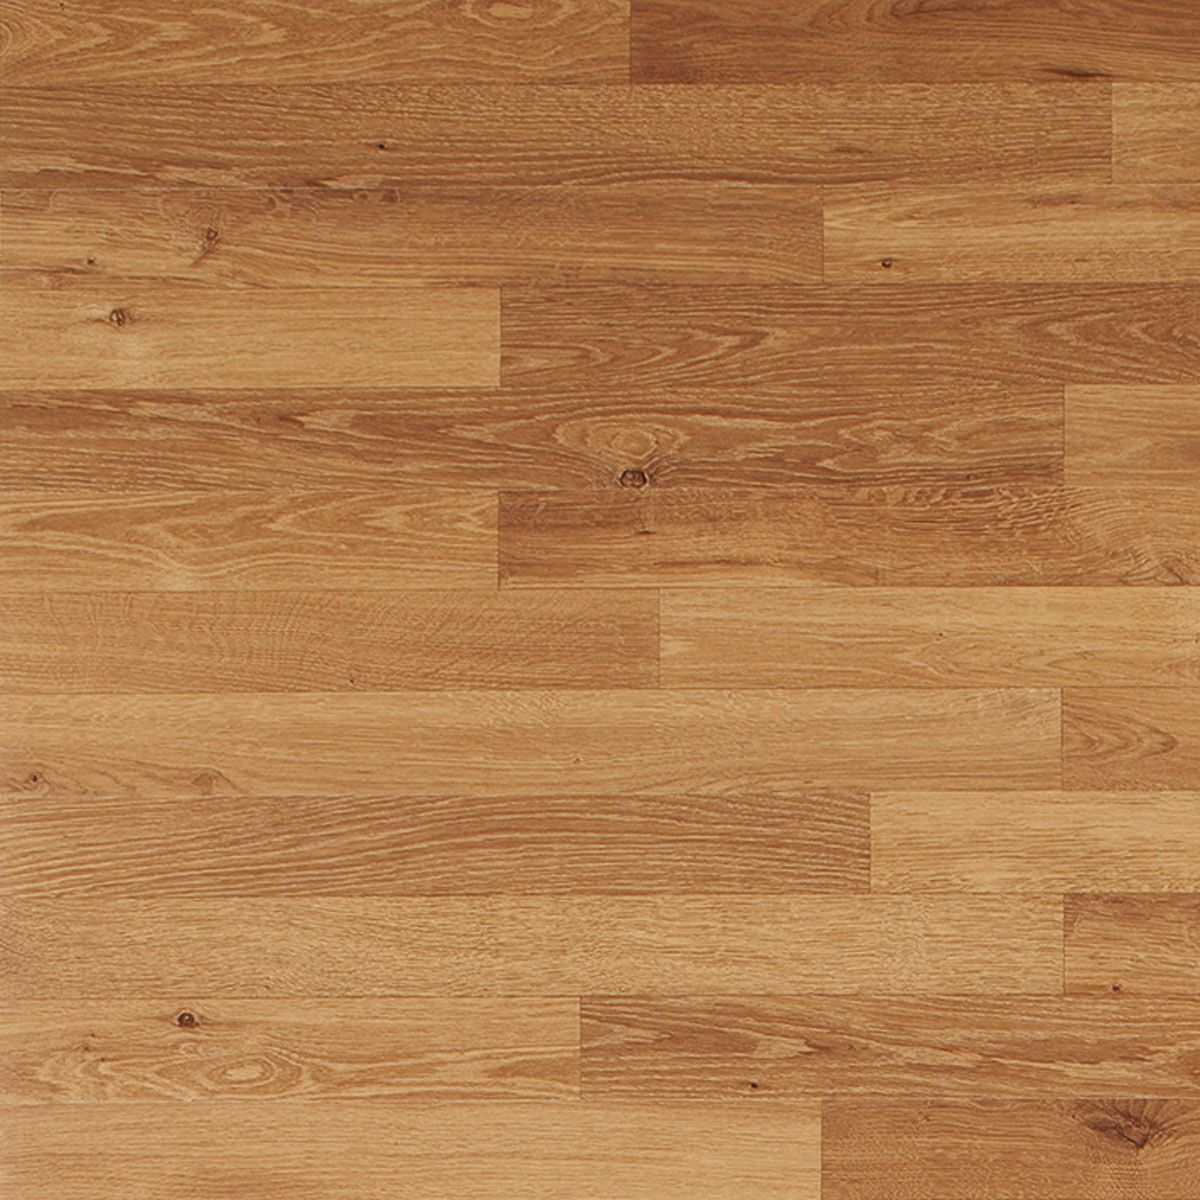 Tanned oak 3 strip planks quick stepqs 700 tanned oak 3 tanned oak 3 strip planks quick stepqs 700 tanned oak 3 dailygadgetfo Images